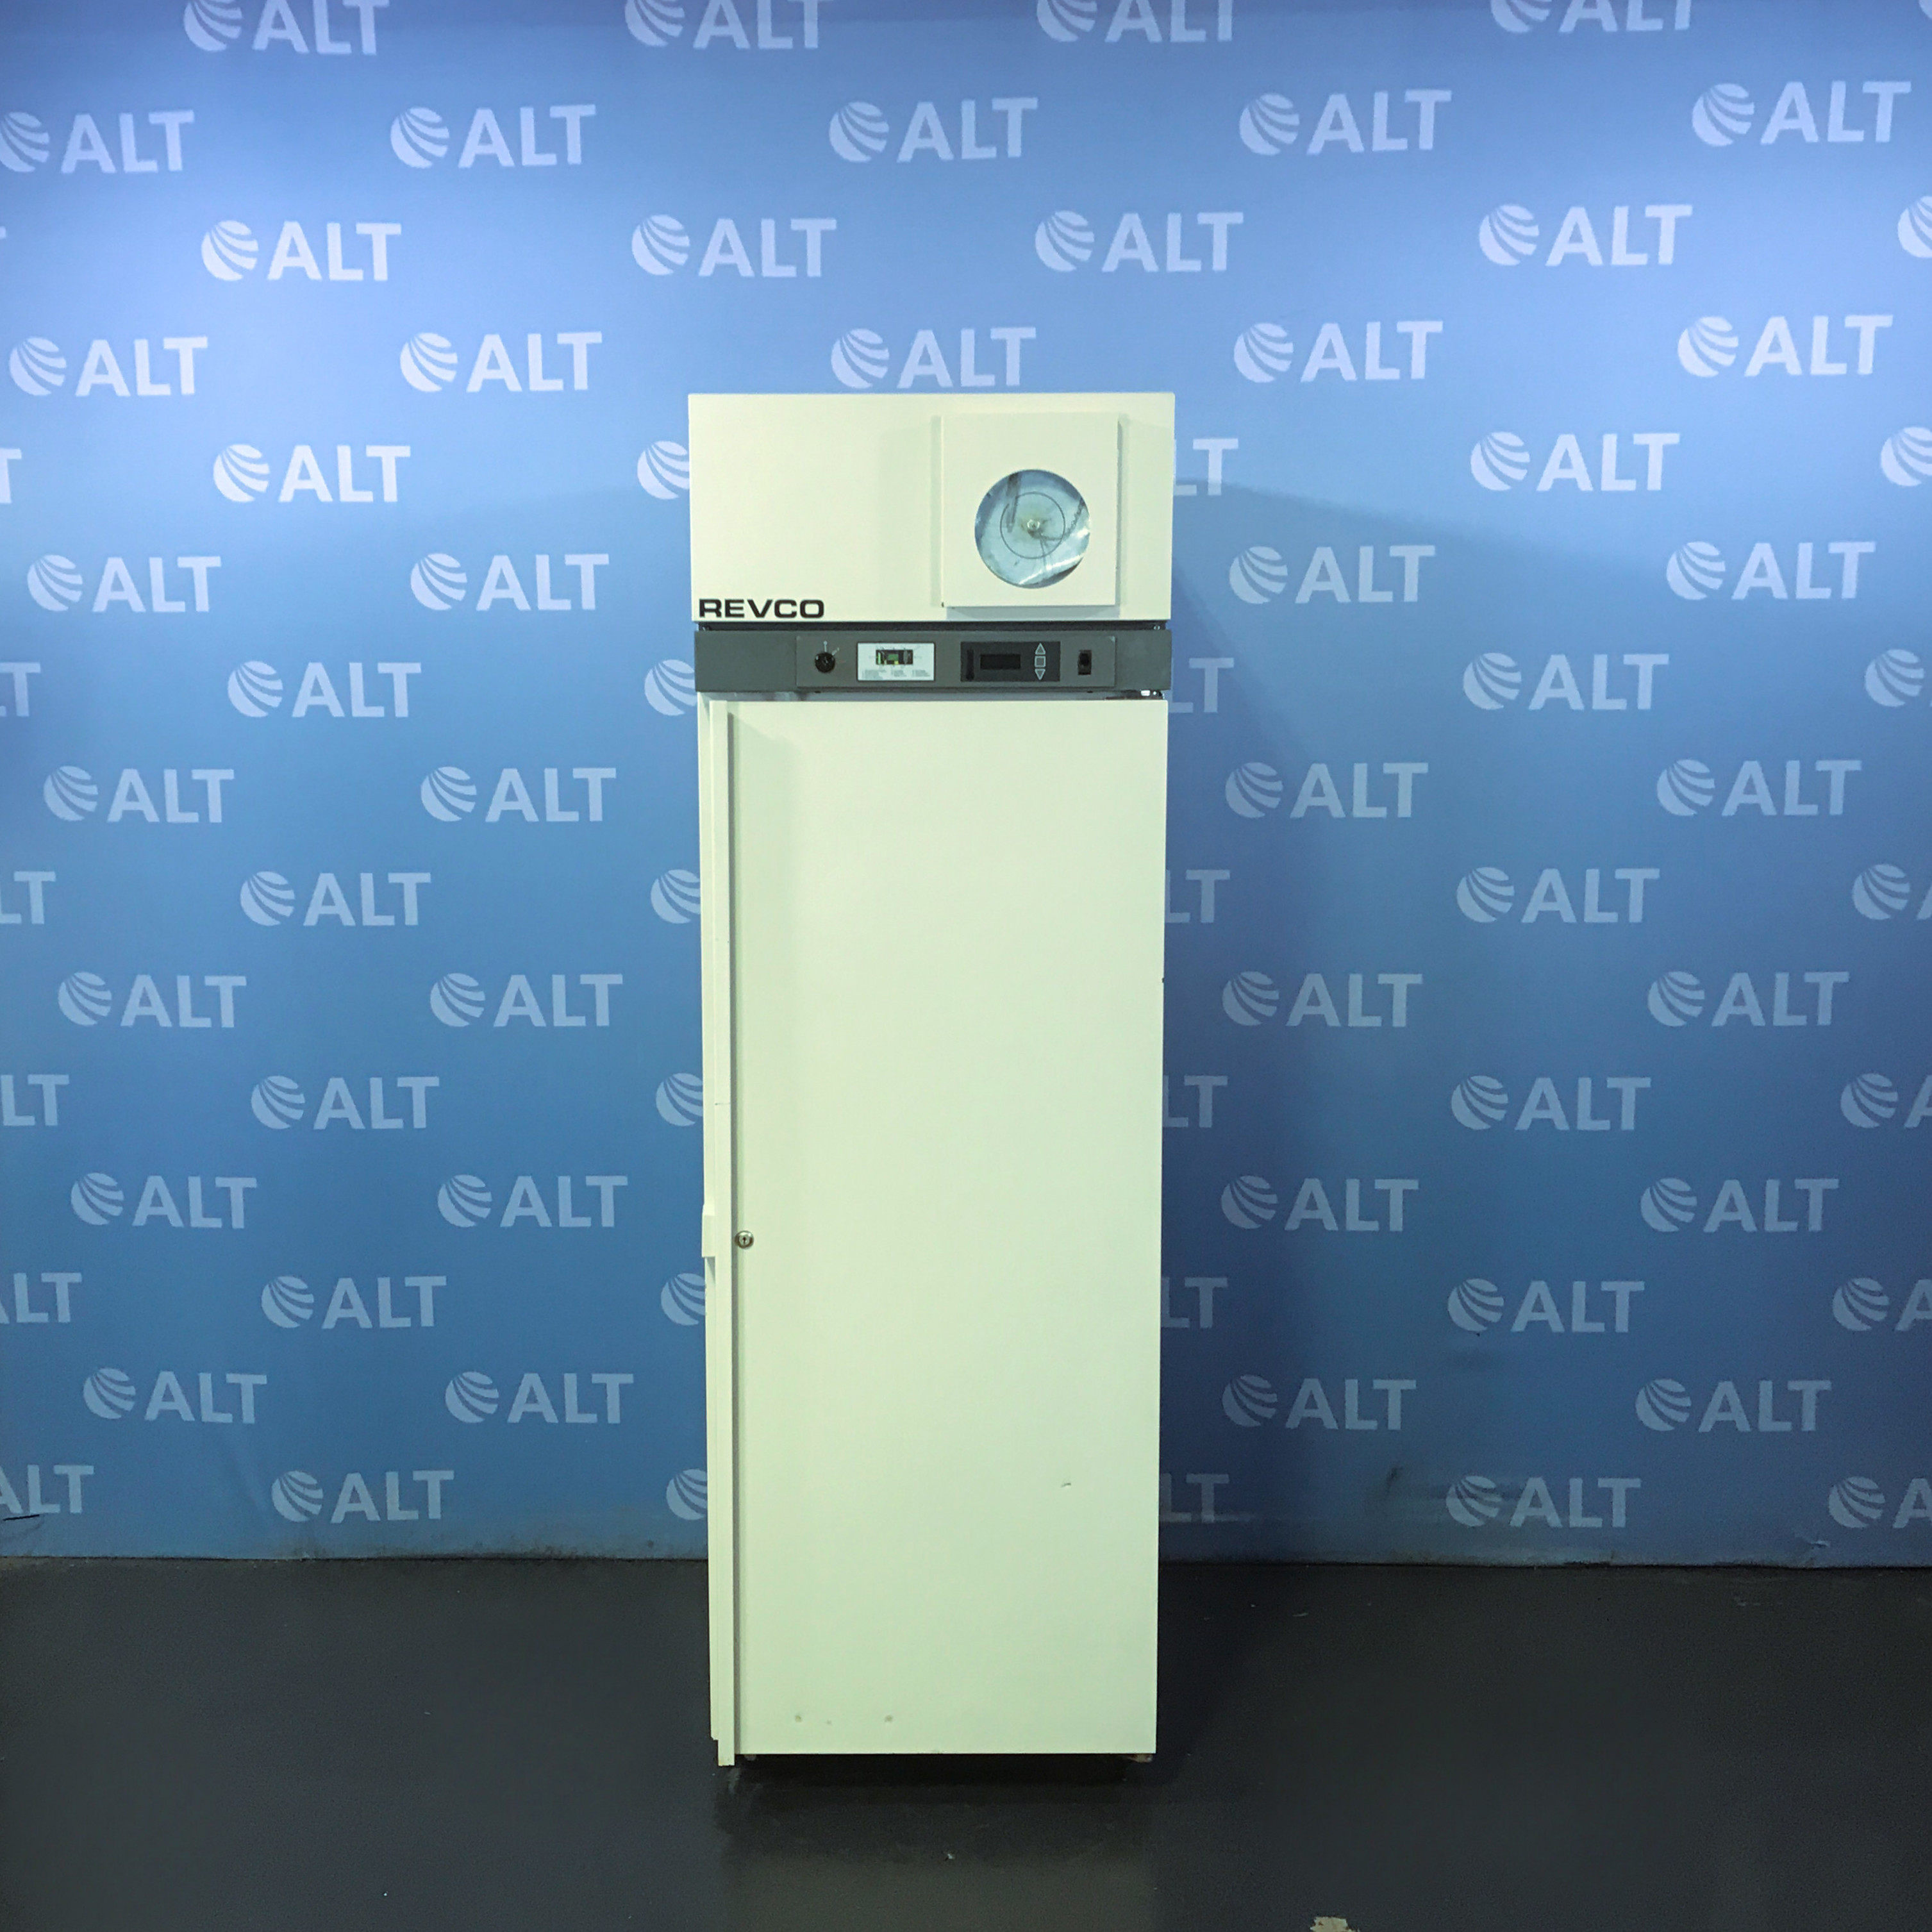 Laboratory Refrigerator Model REL1204A20 Name